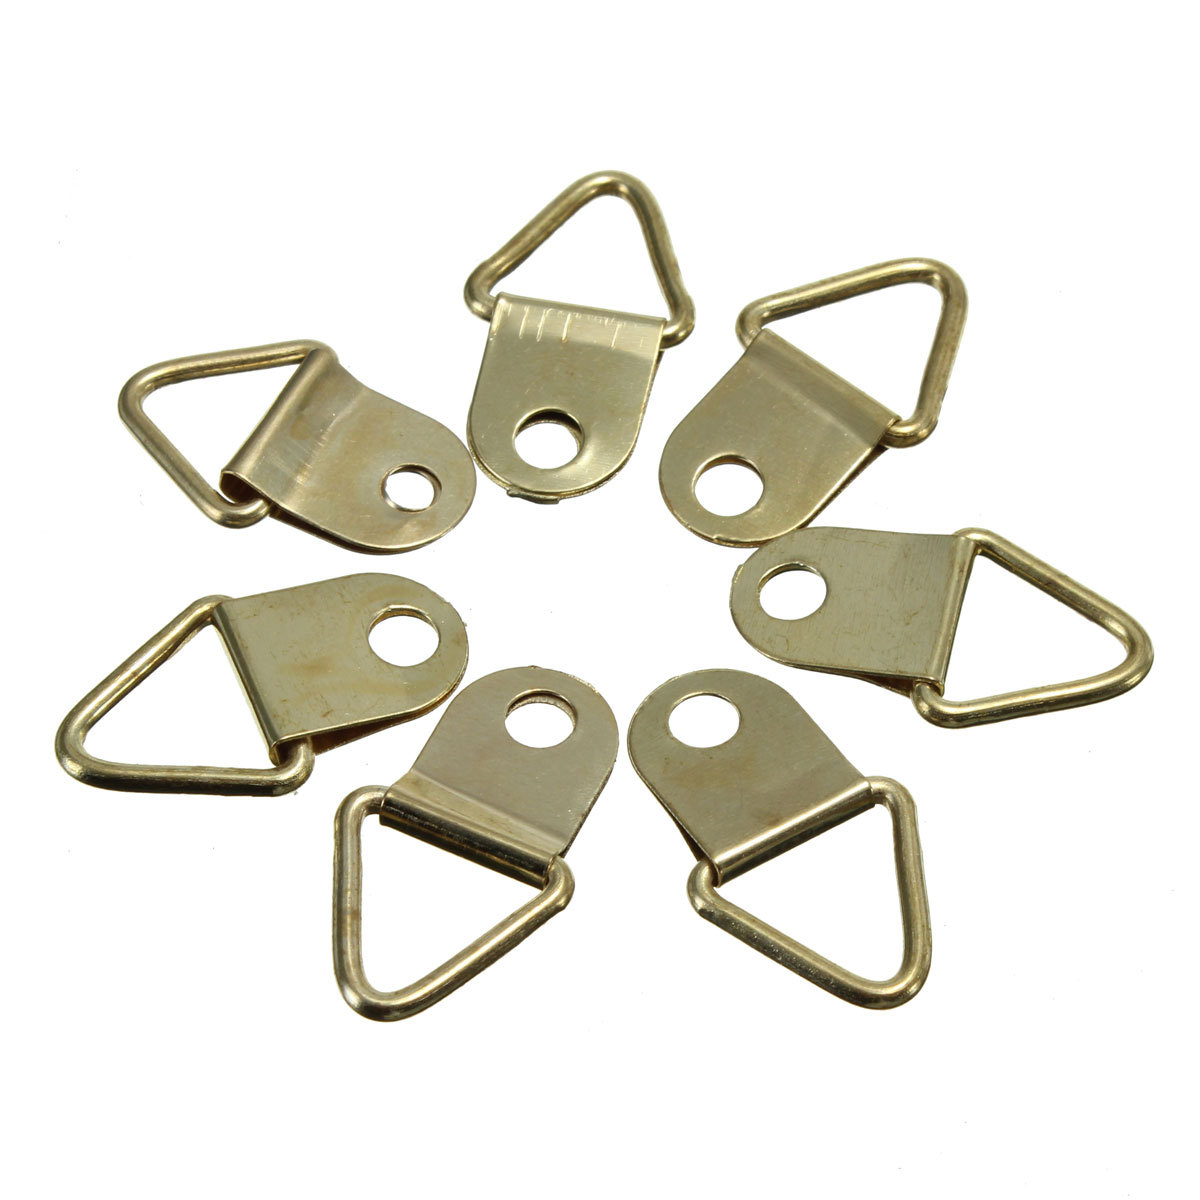 MTGATHER Universal Strong Golden 50pcs D Rings Decor Picture Frames Hanger Hooks Hanging Triangle Screws Helper(China (Mainland))